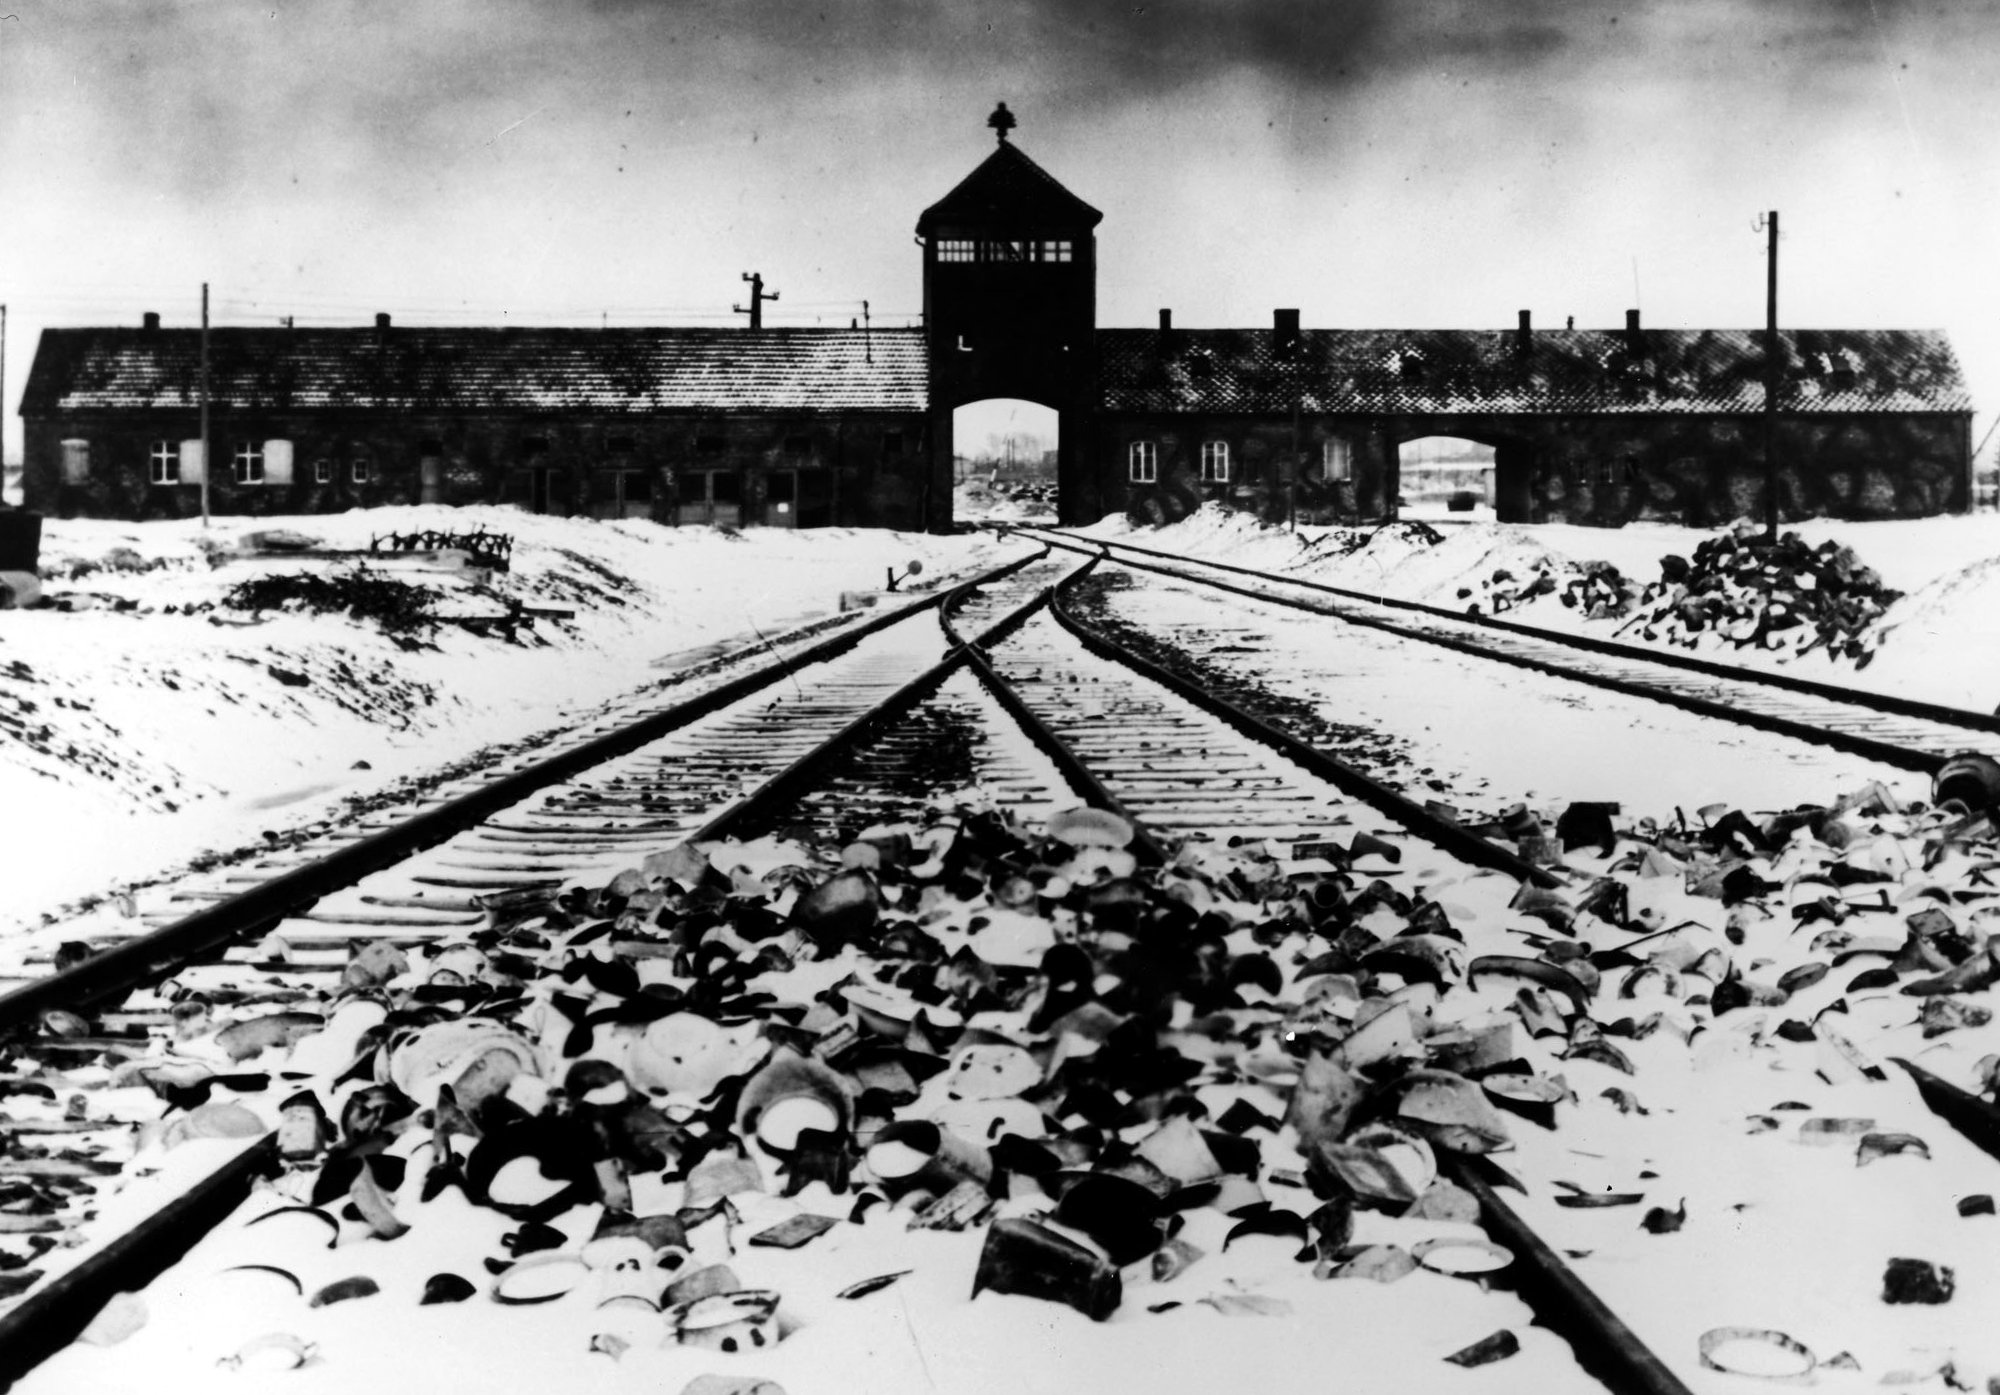 When is Holocaust Memorial Day 2017 and why is it important?